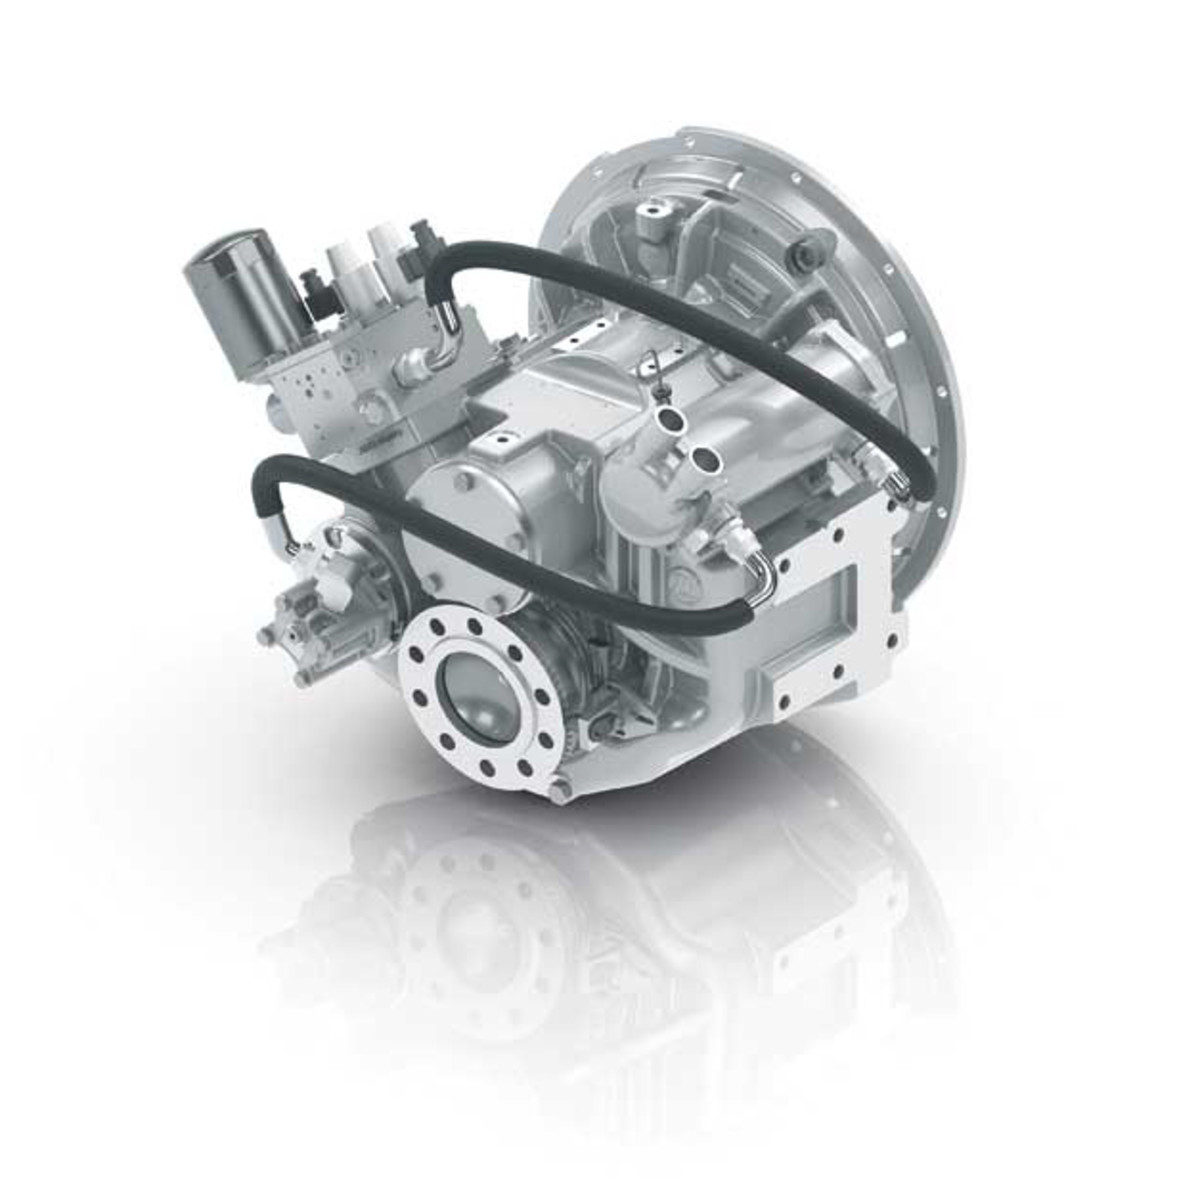 New hybrid propulsion is coming from ZF.